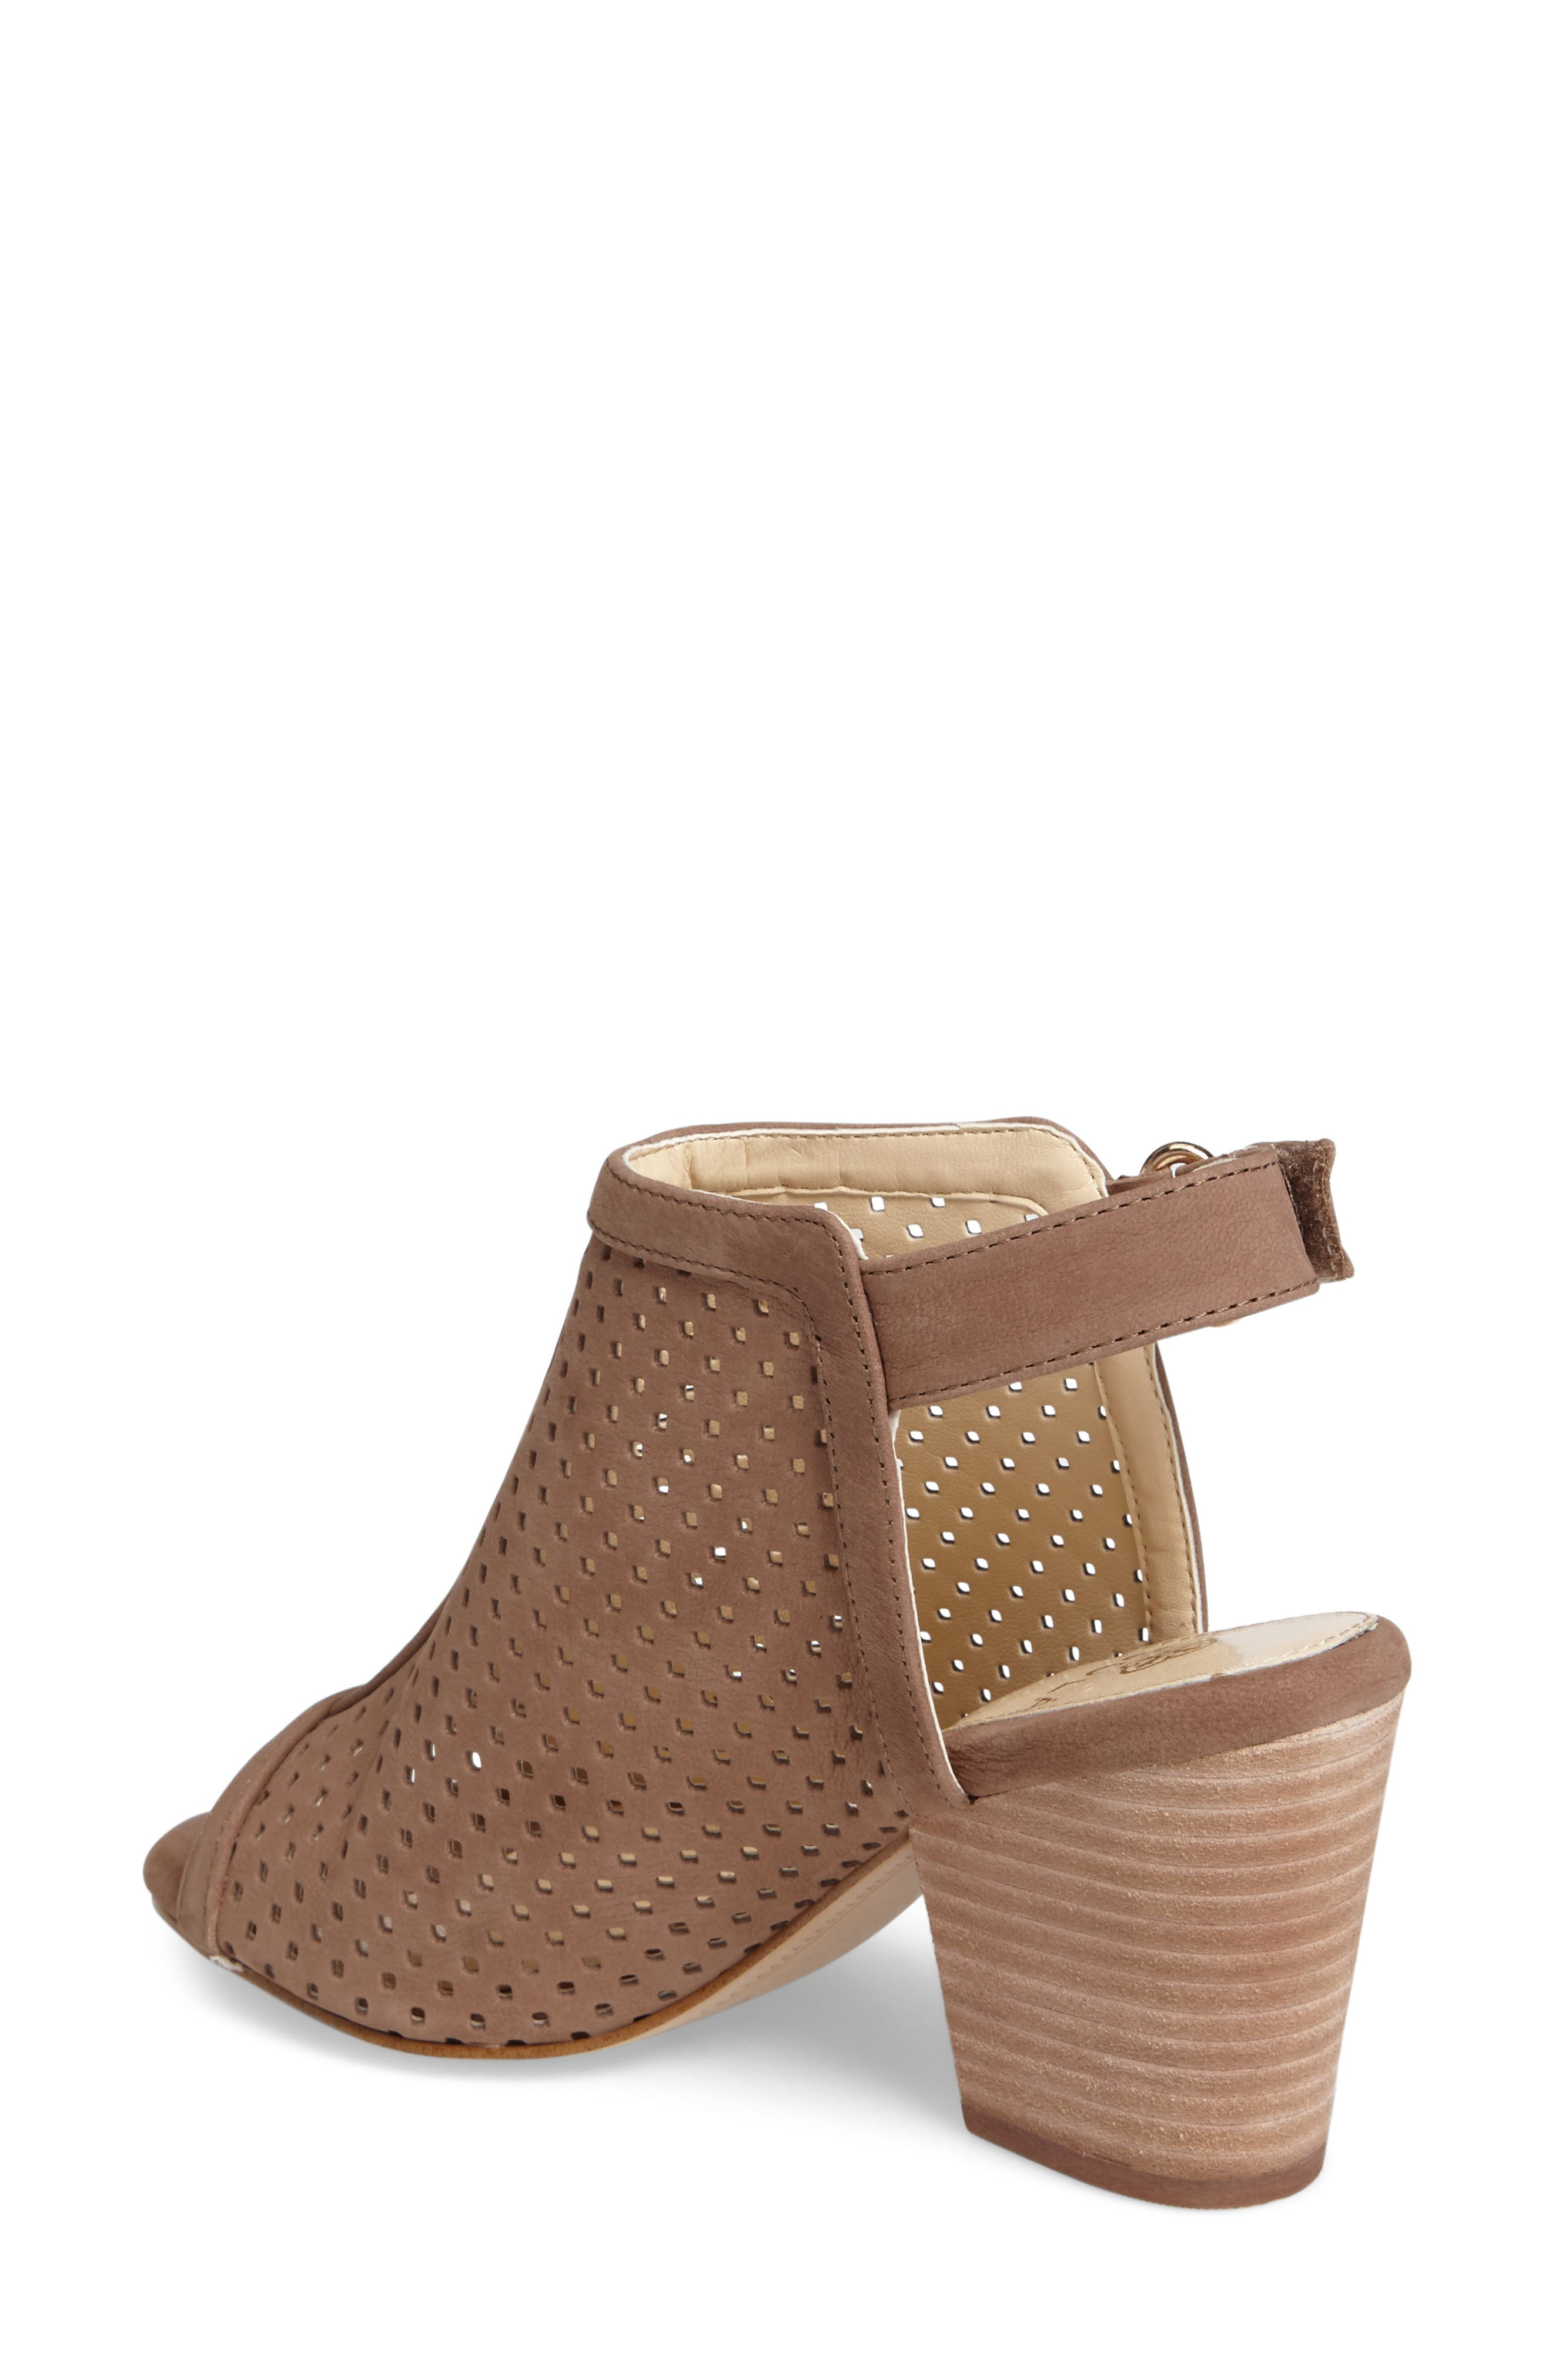 ,                             'Lora' Perforated Open-Toe Bootie Sandal,                             Alternate thumbnail 12, color,                             250